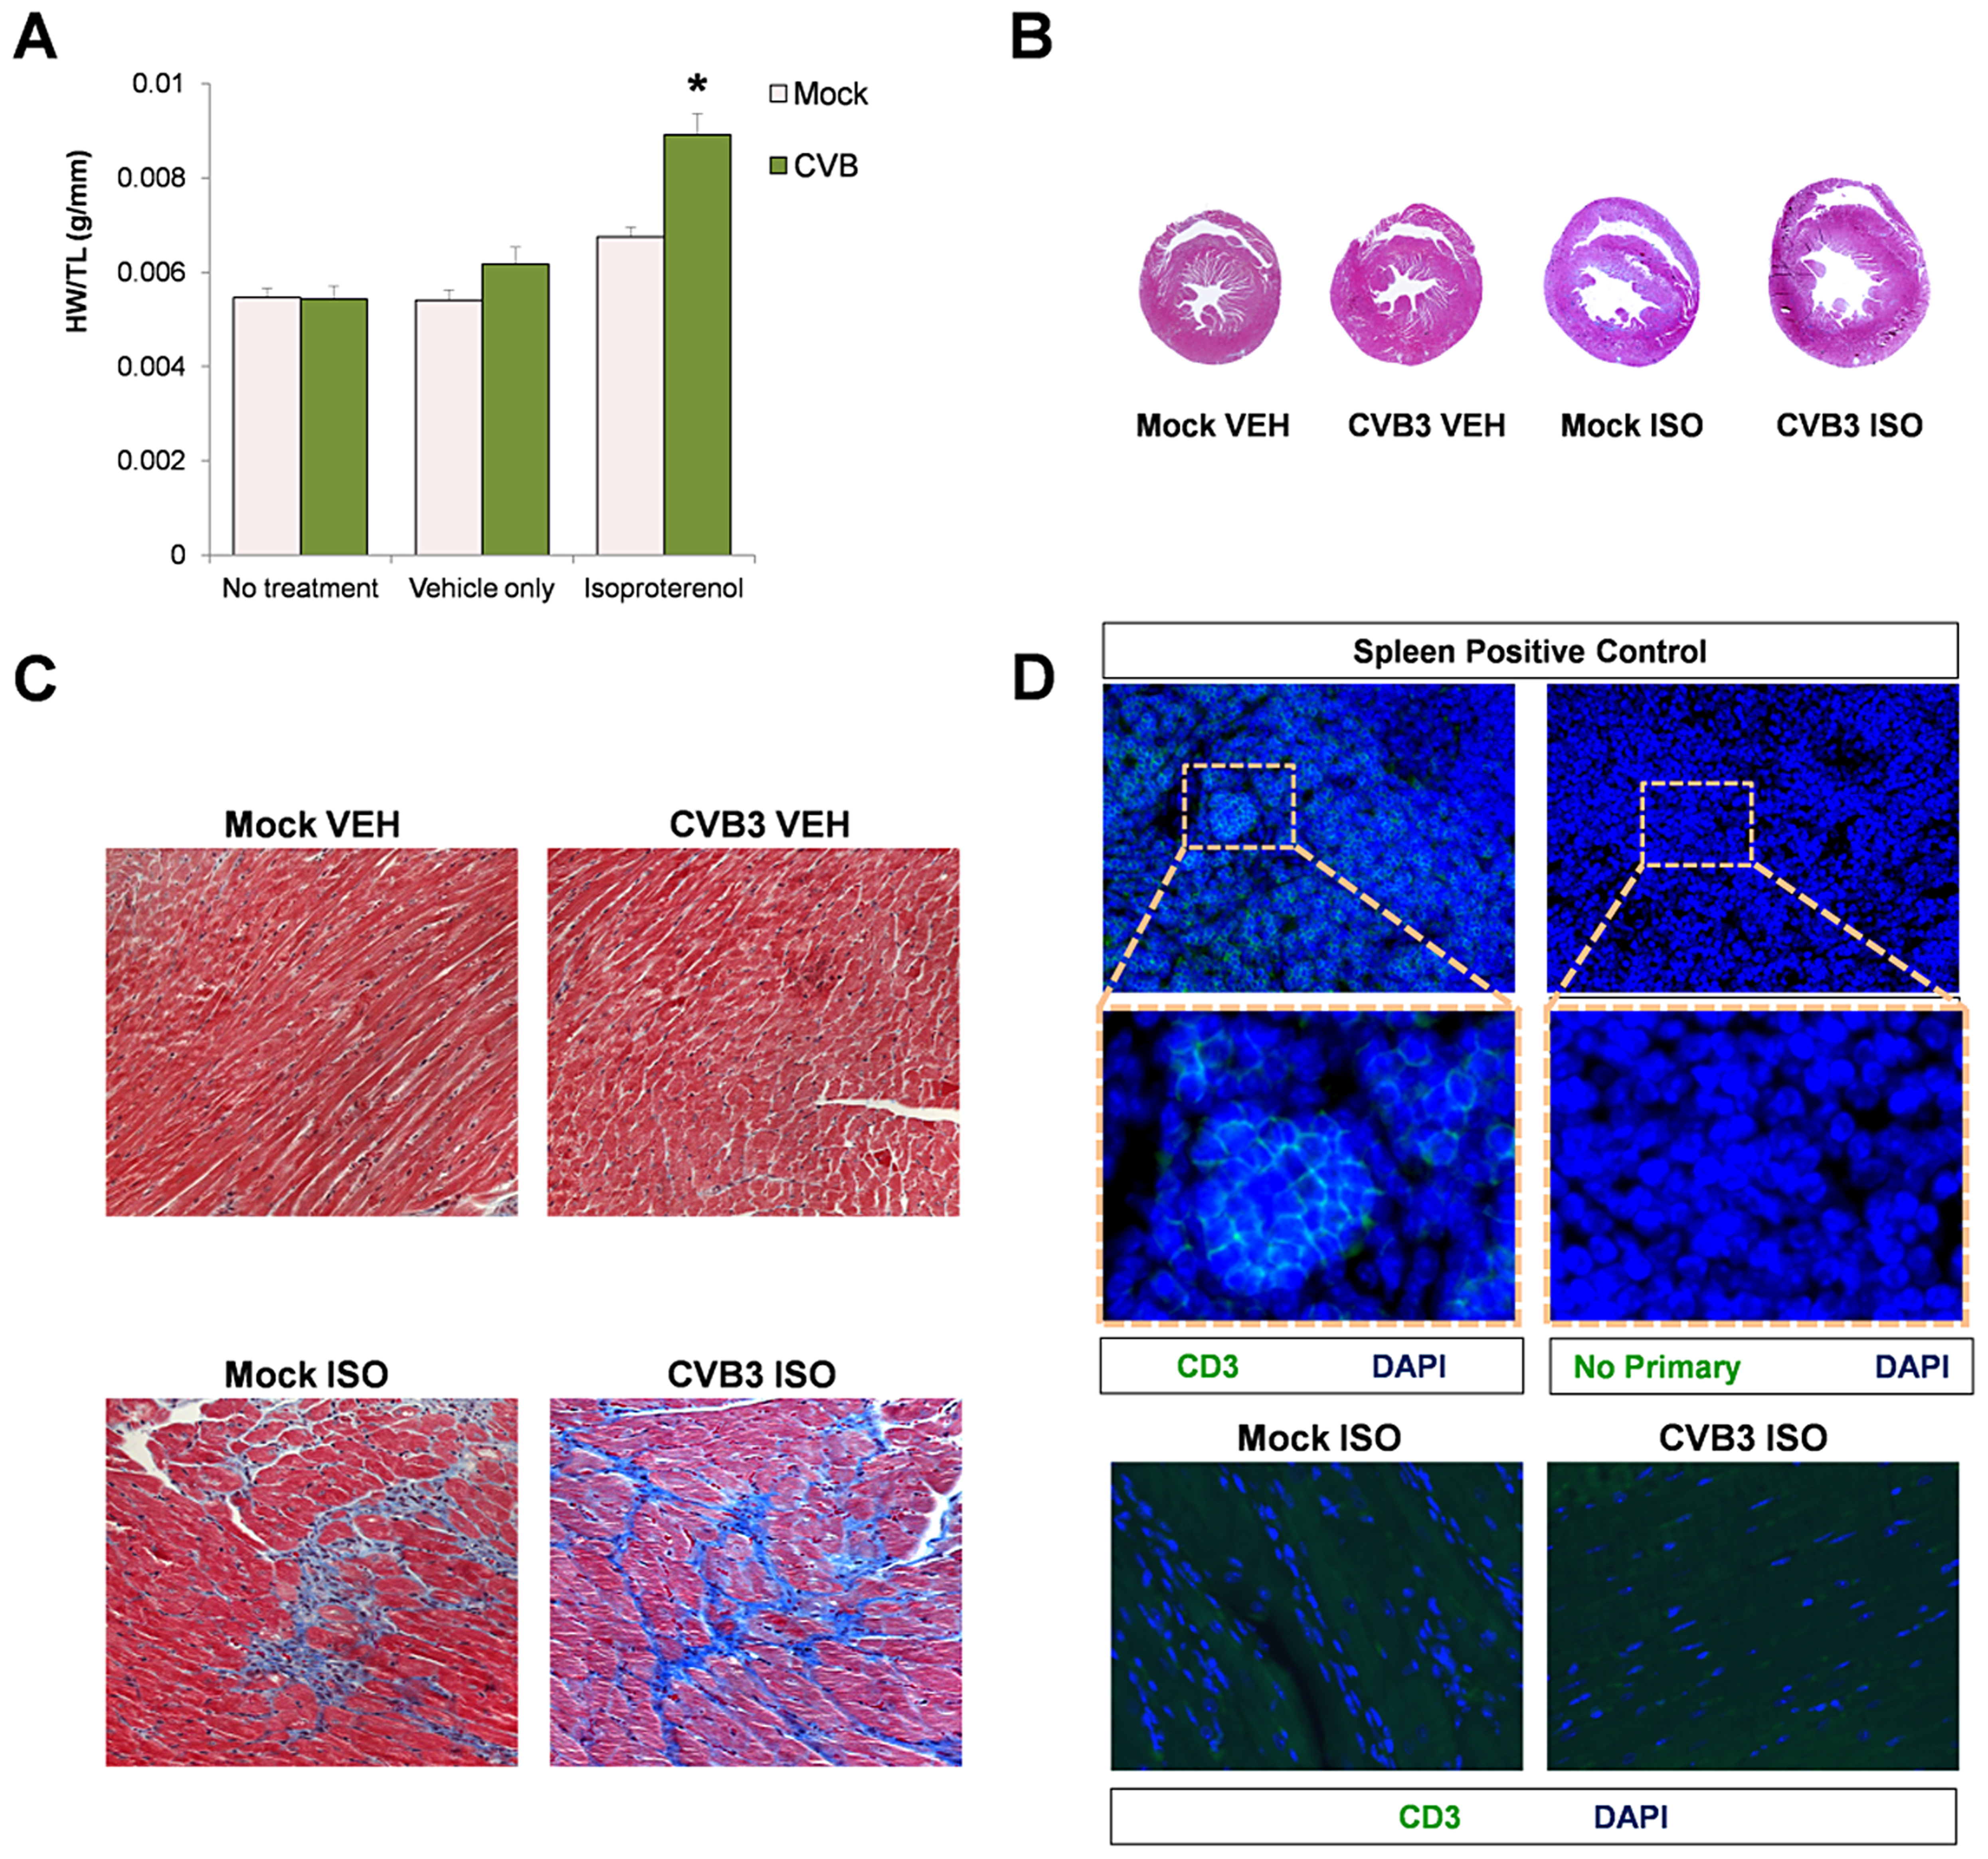 Beta-adrenergic stimulation-induced cardiac hypertrophy in adult mice infected with CVB3 at an early age leads to dilated cardiomyopathy.